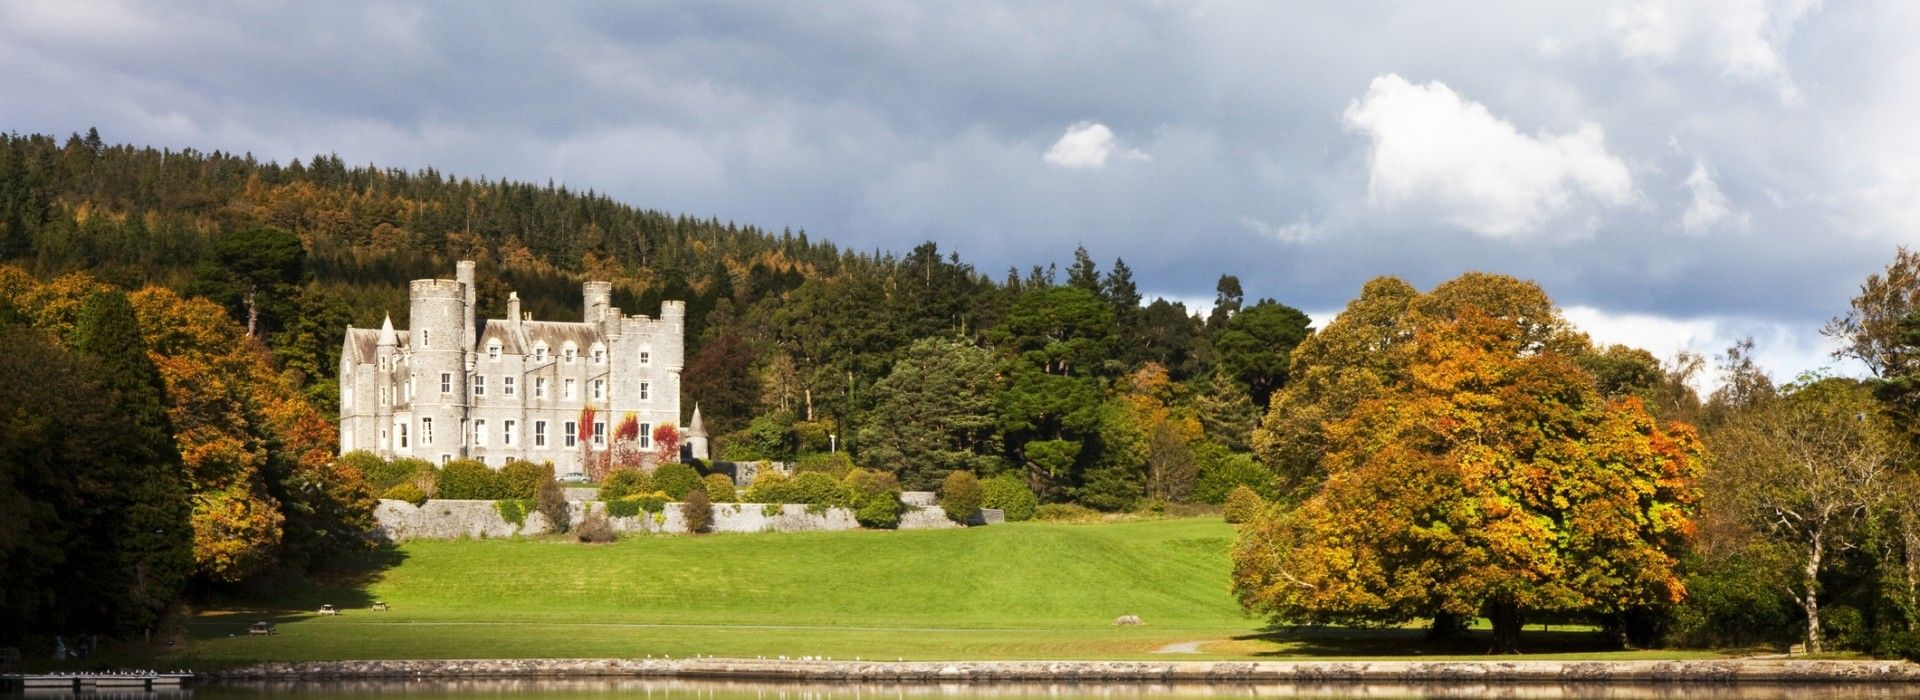 Sightseeing, attractions, culture and history Tours in Ireland